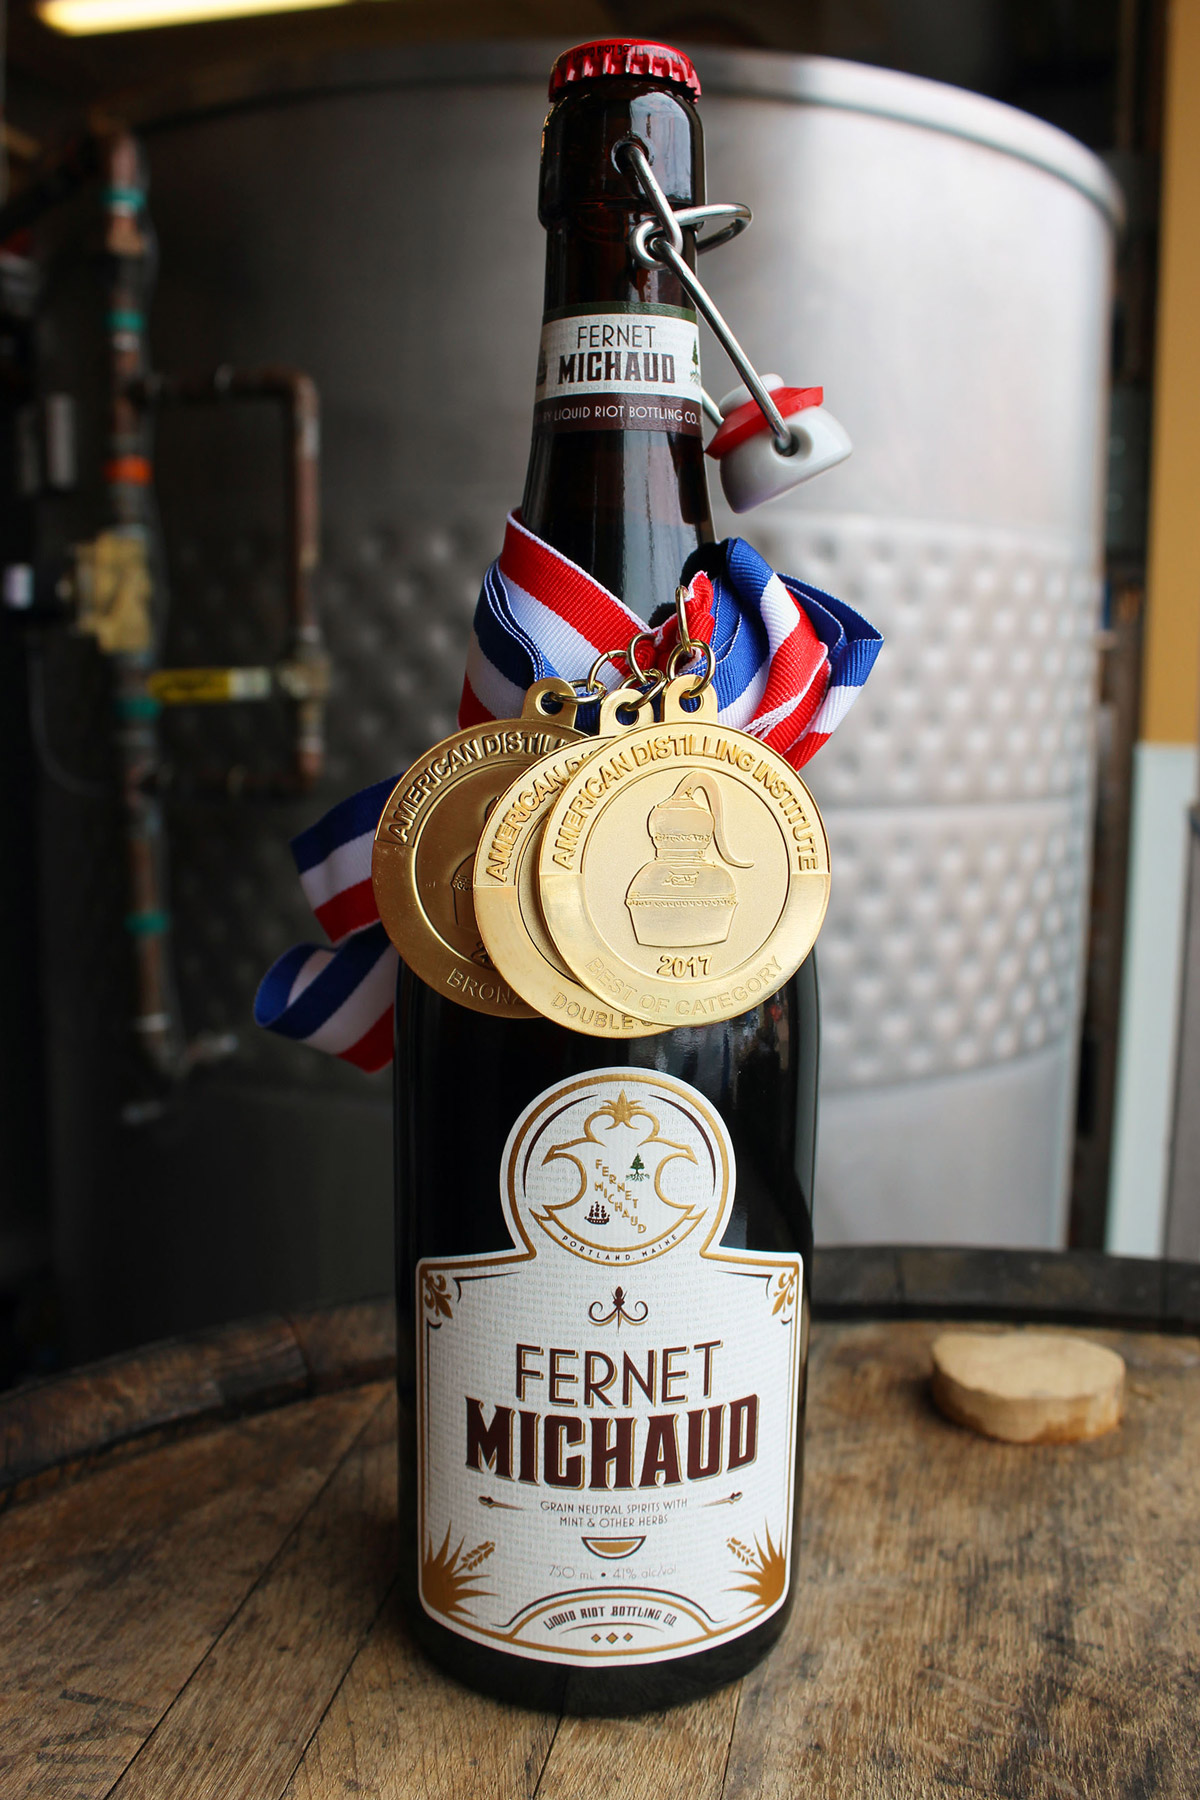 Fernet Michaud Bottle with Medals 2017